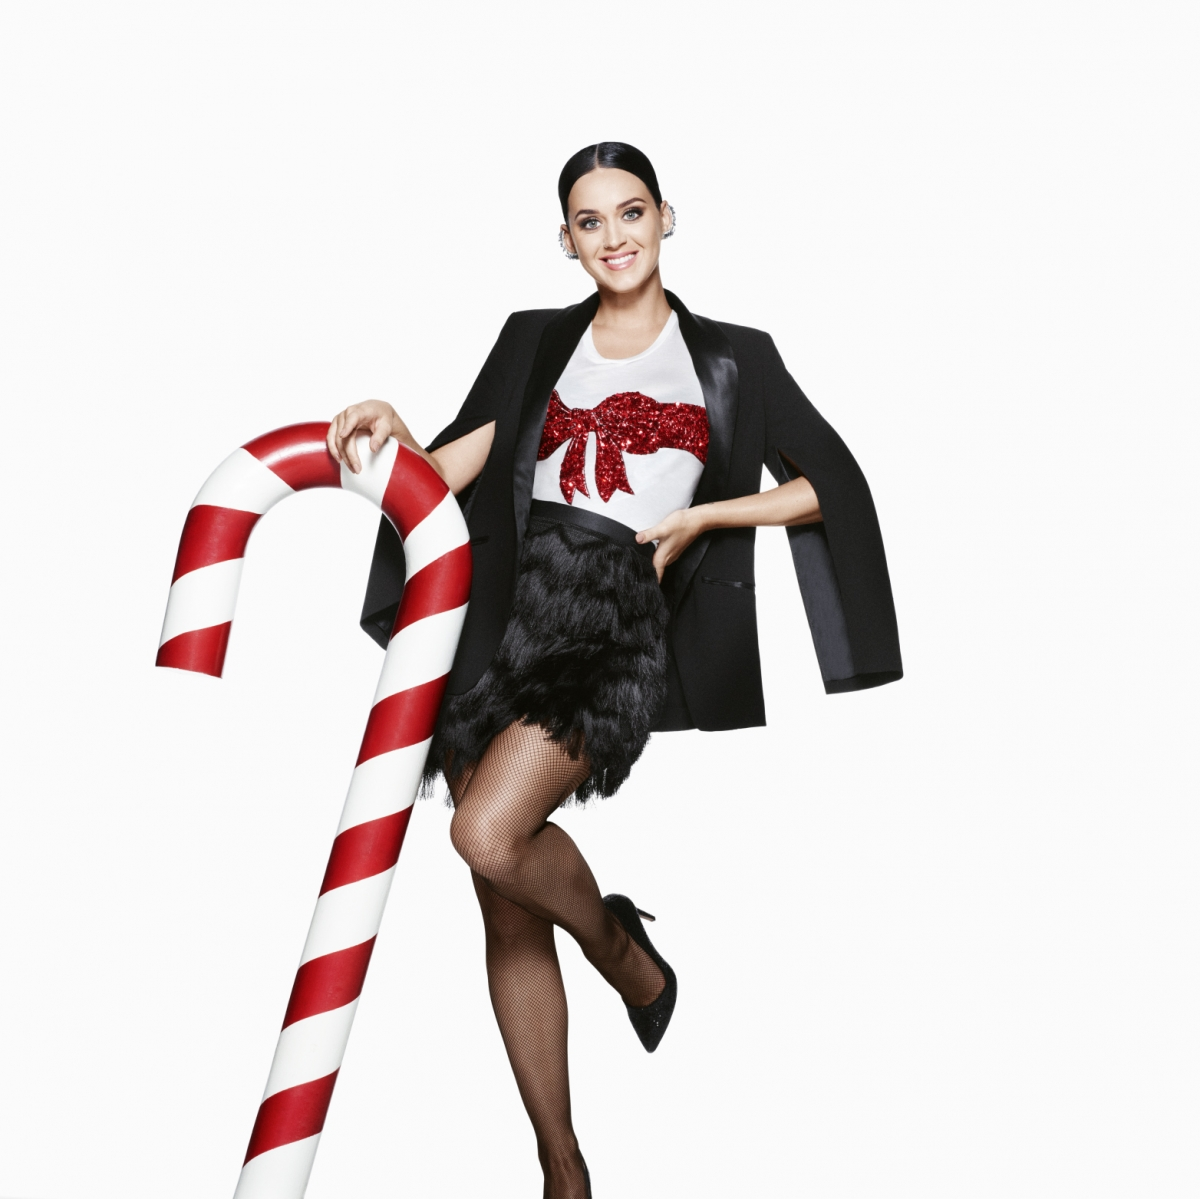 Katy Perry is face of H&M